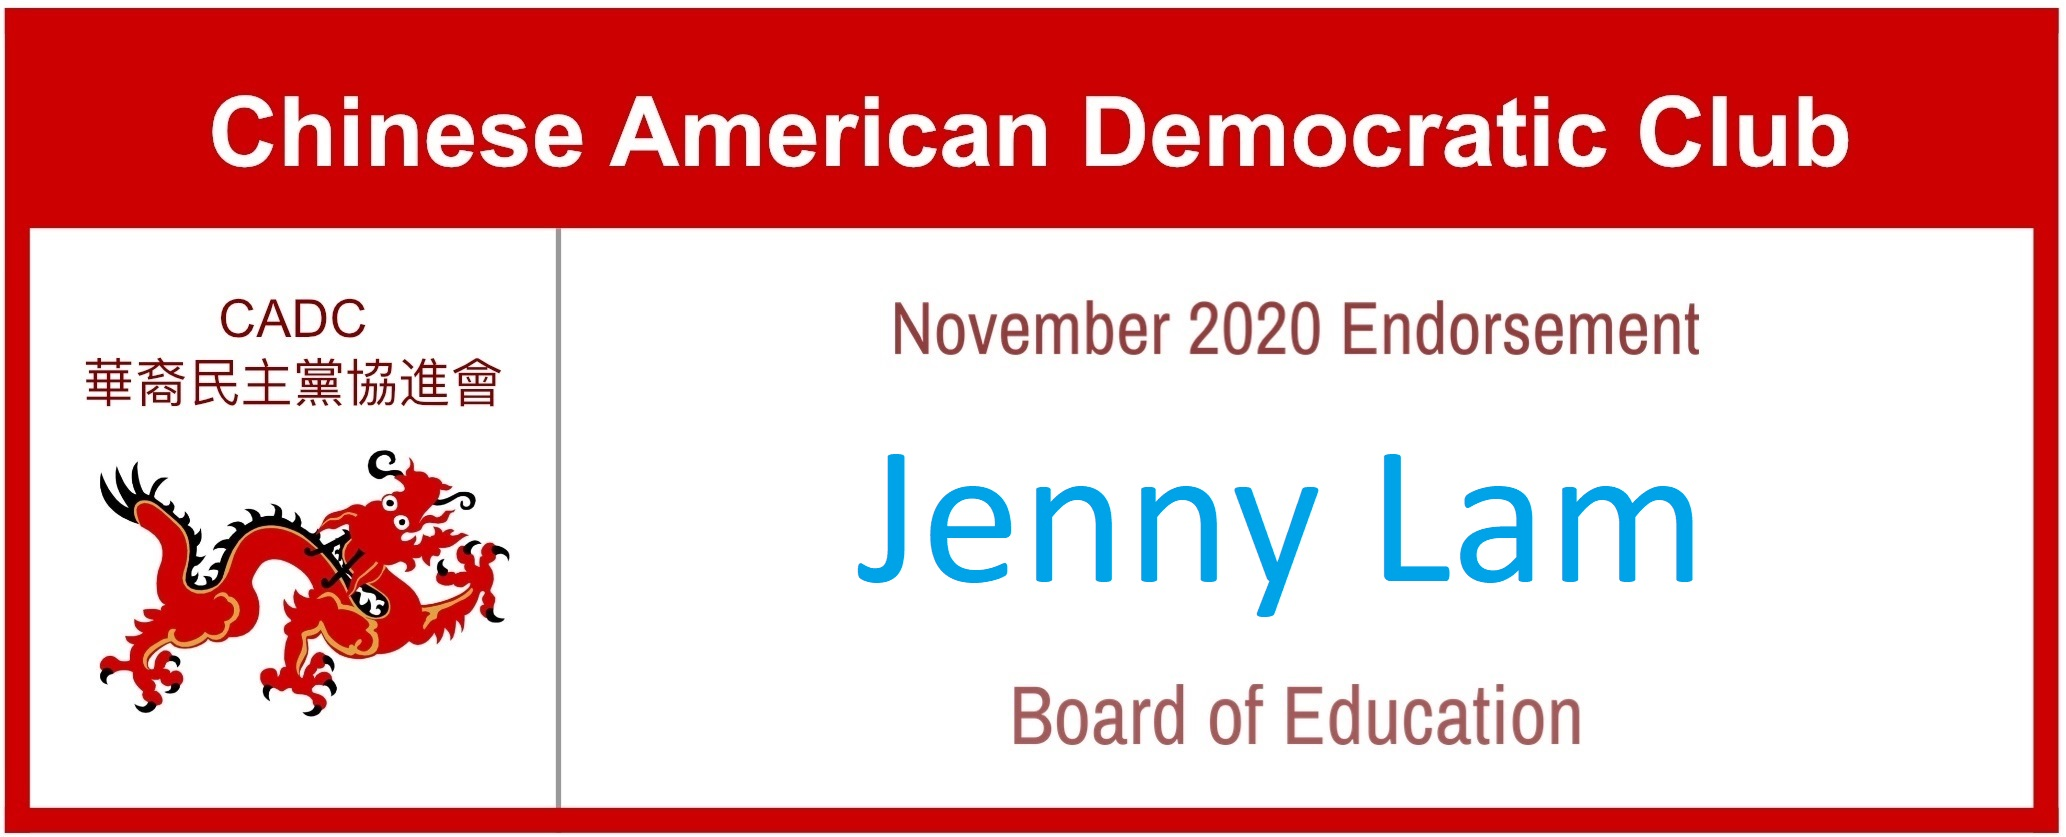 Jenny Lam for Board of Education - CADC Endorsement November 2020